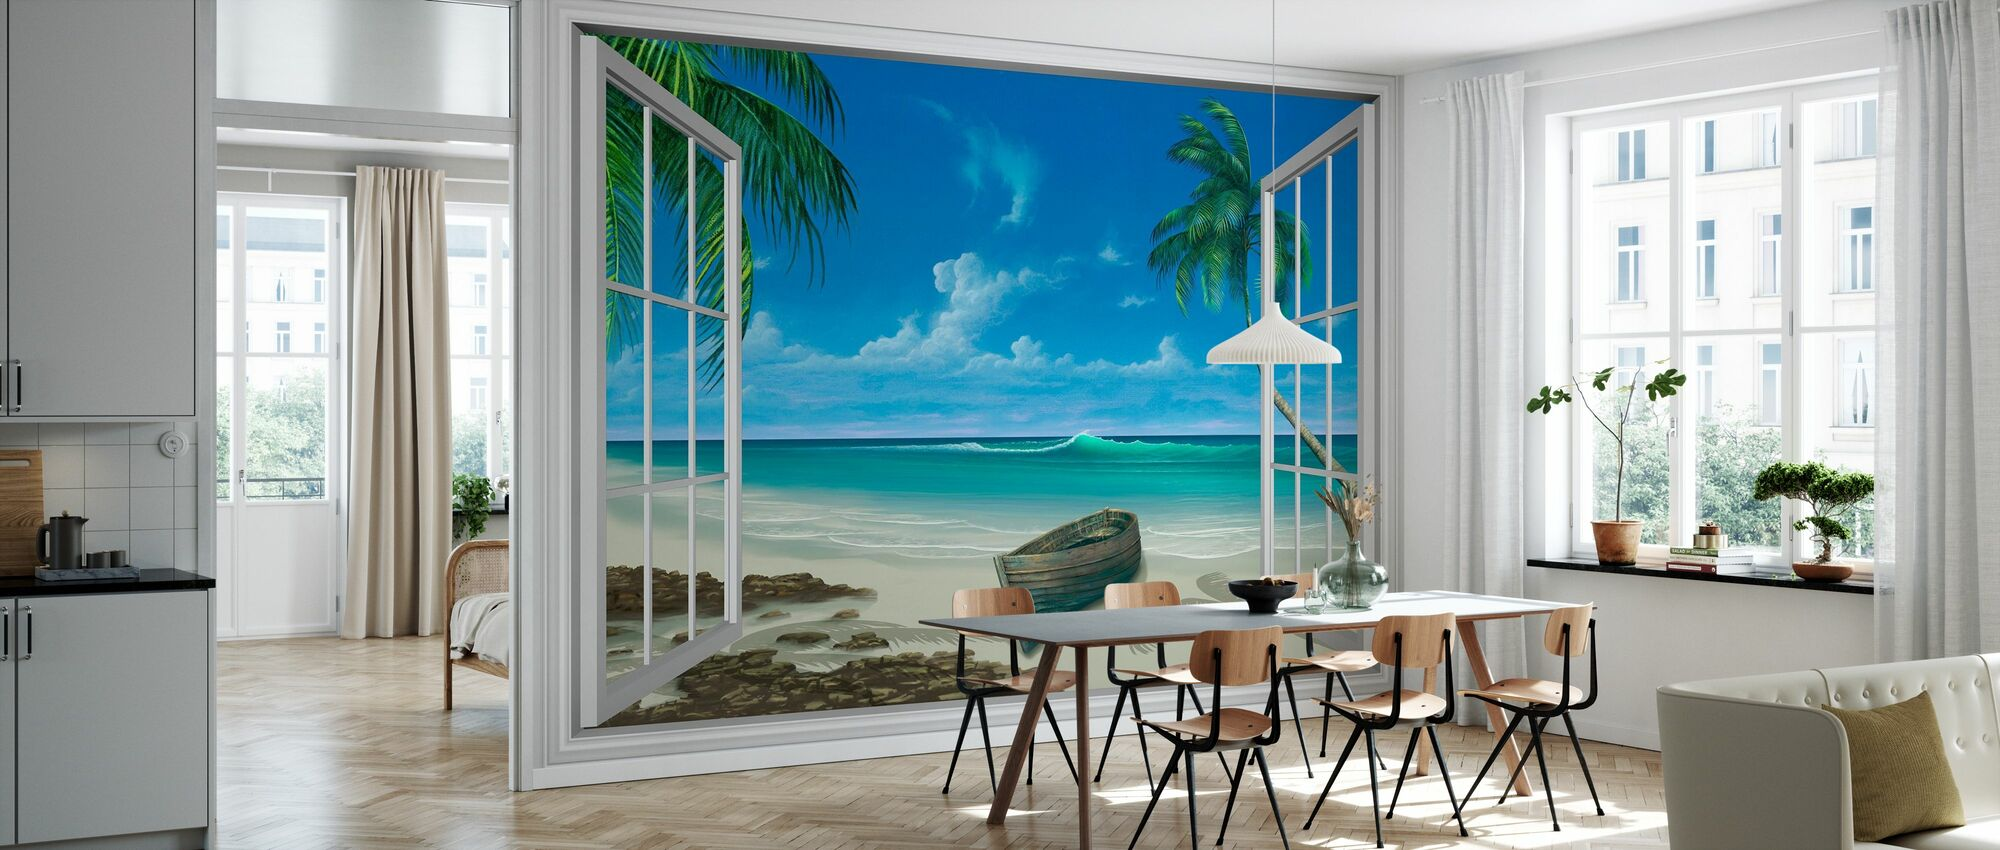 Escape to Paradise - Wallpaper - Kitchen